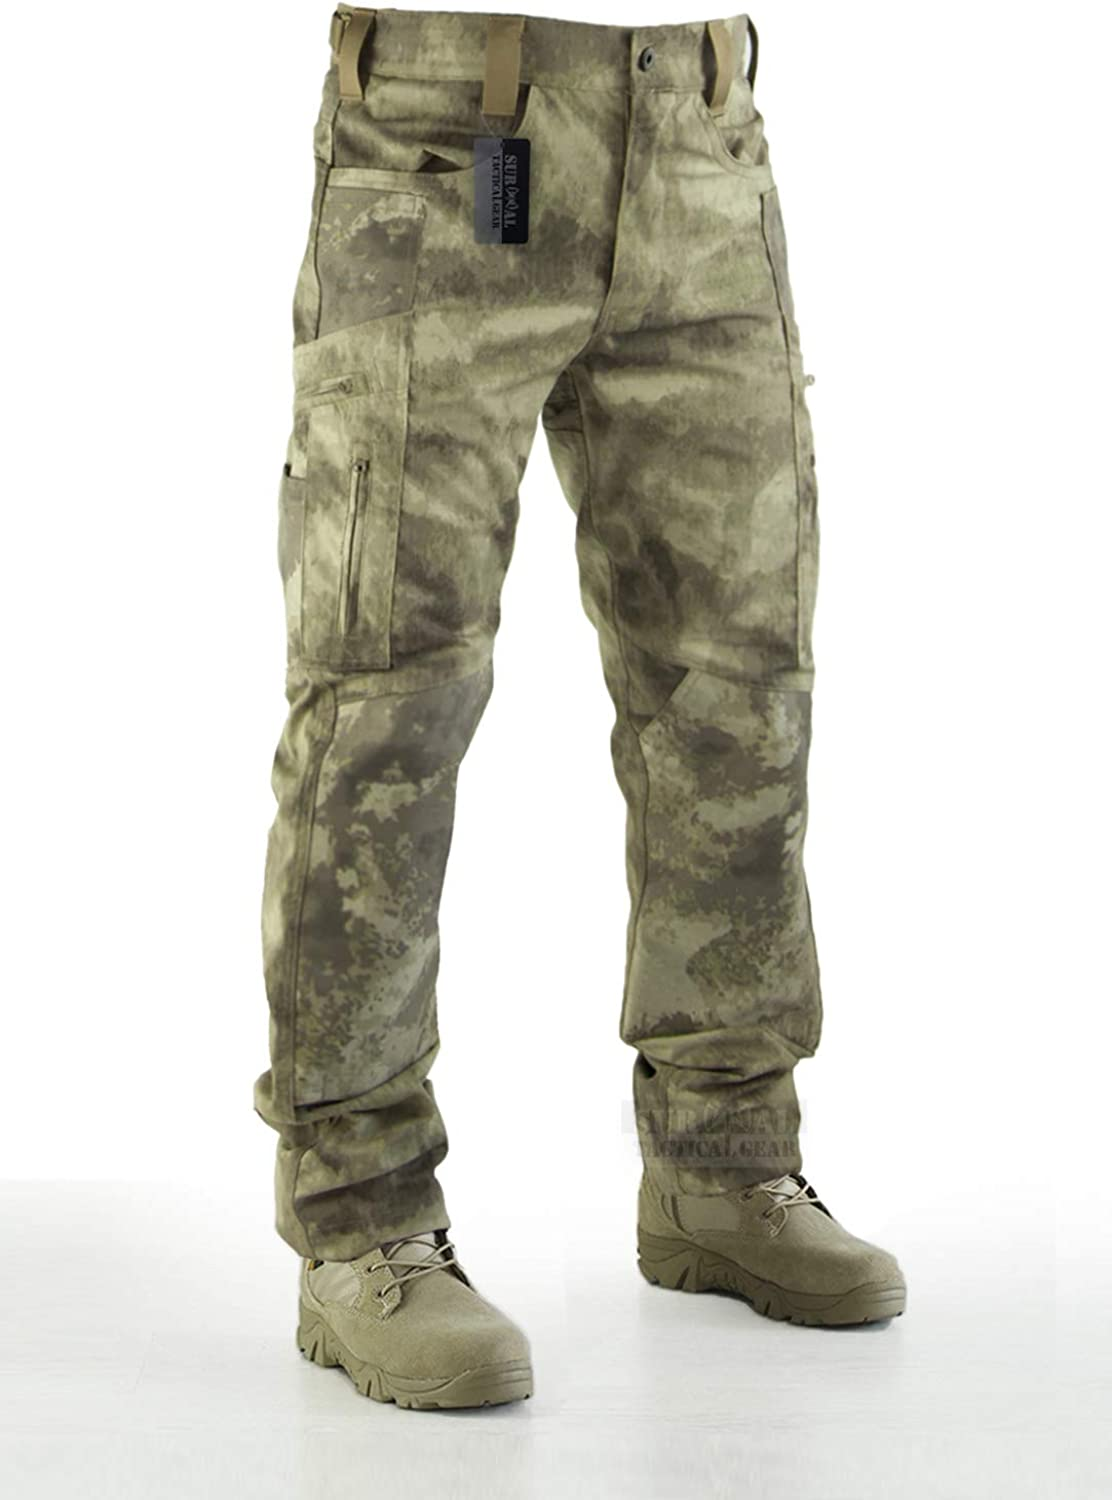 BIYLACLESEN Mens Outdoor Ripstop Military Pants Multi Pockets Lightweight Quick Dry Cargo Hiking Camping Pants